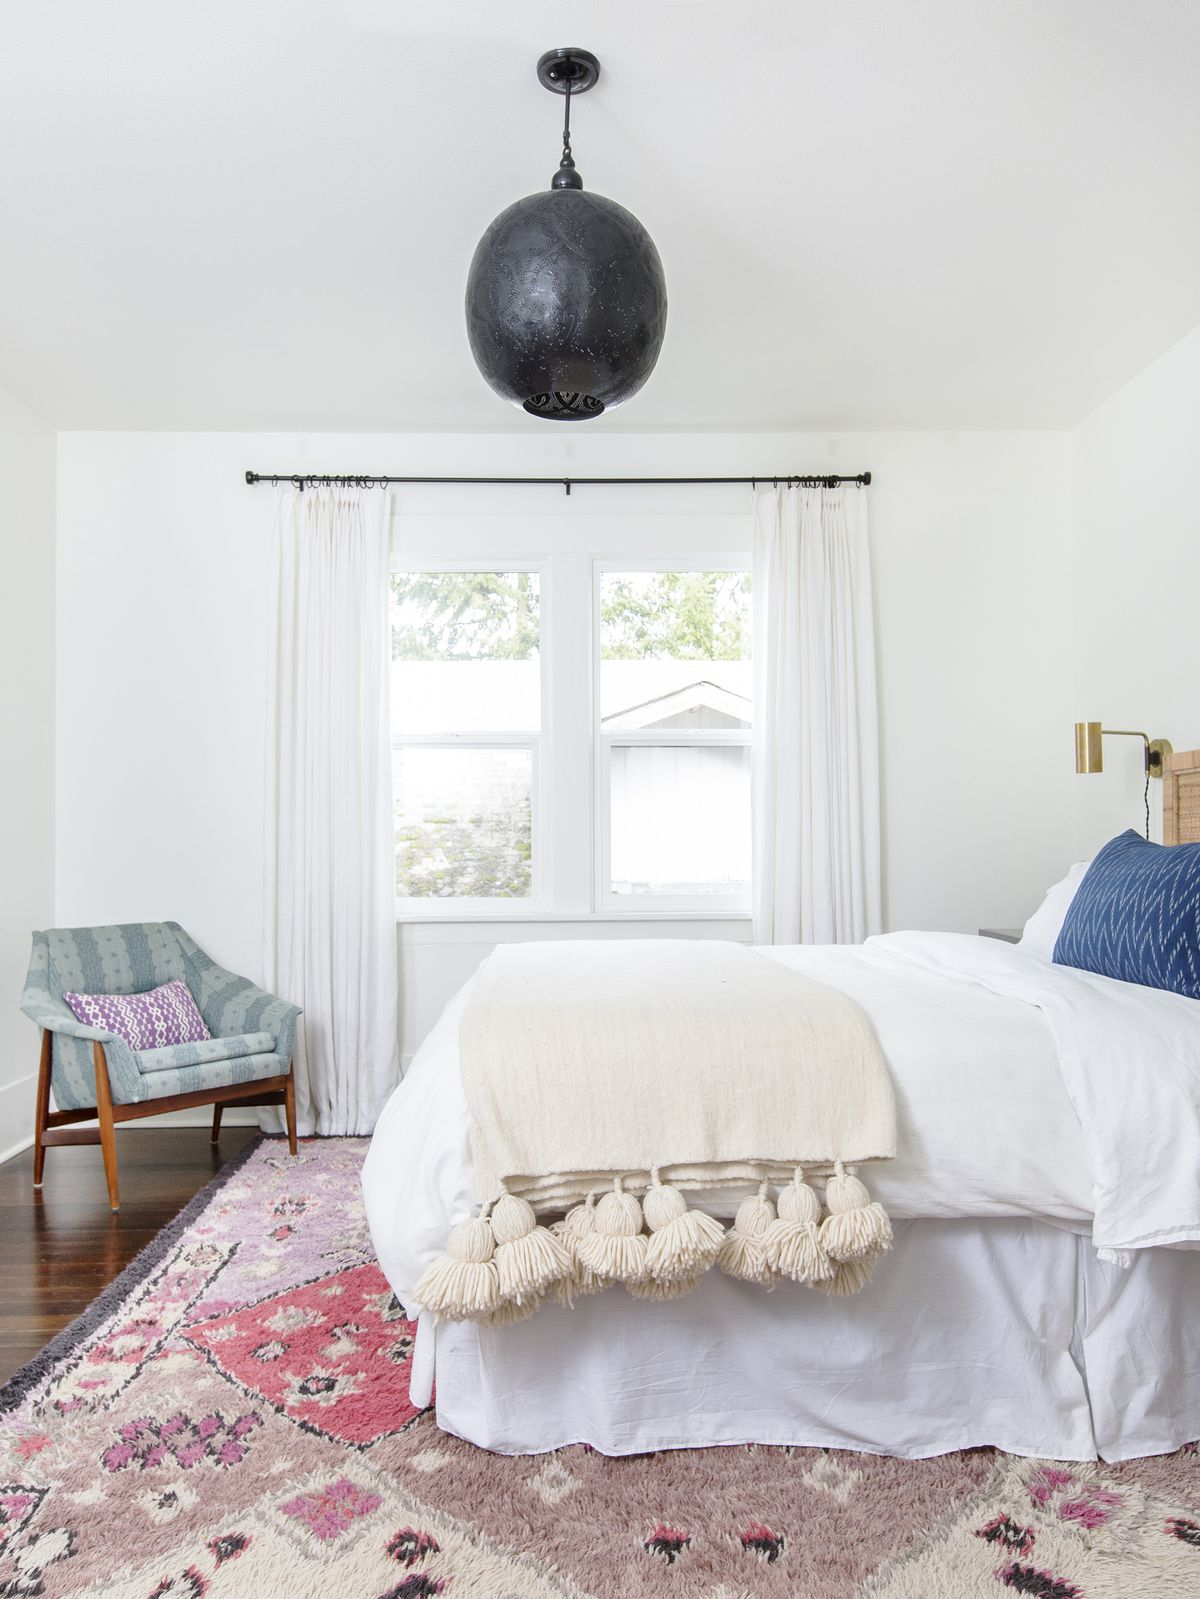 A bedroom. There is a bed with white bed linens and an off-white blanket. There is a patterned area rug under the bed. There is an arm chair and a window with white curtains.